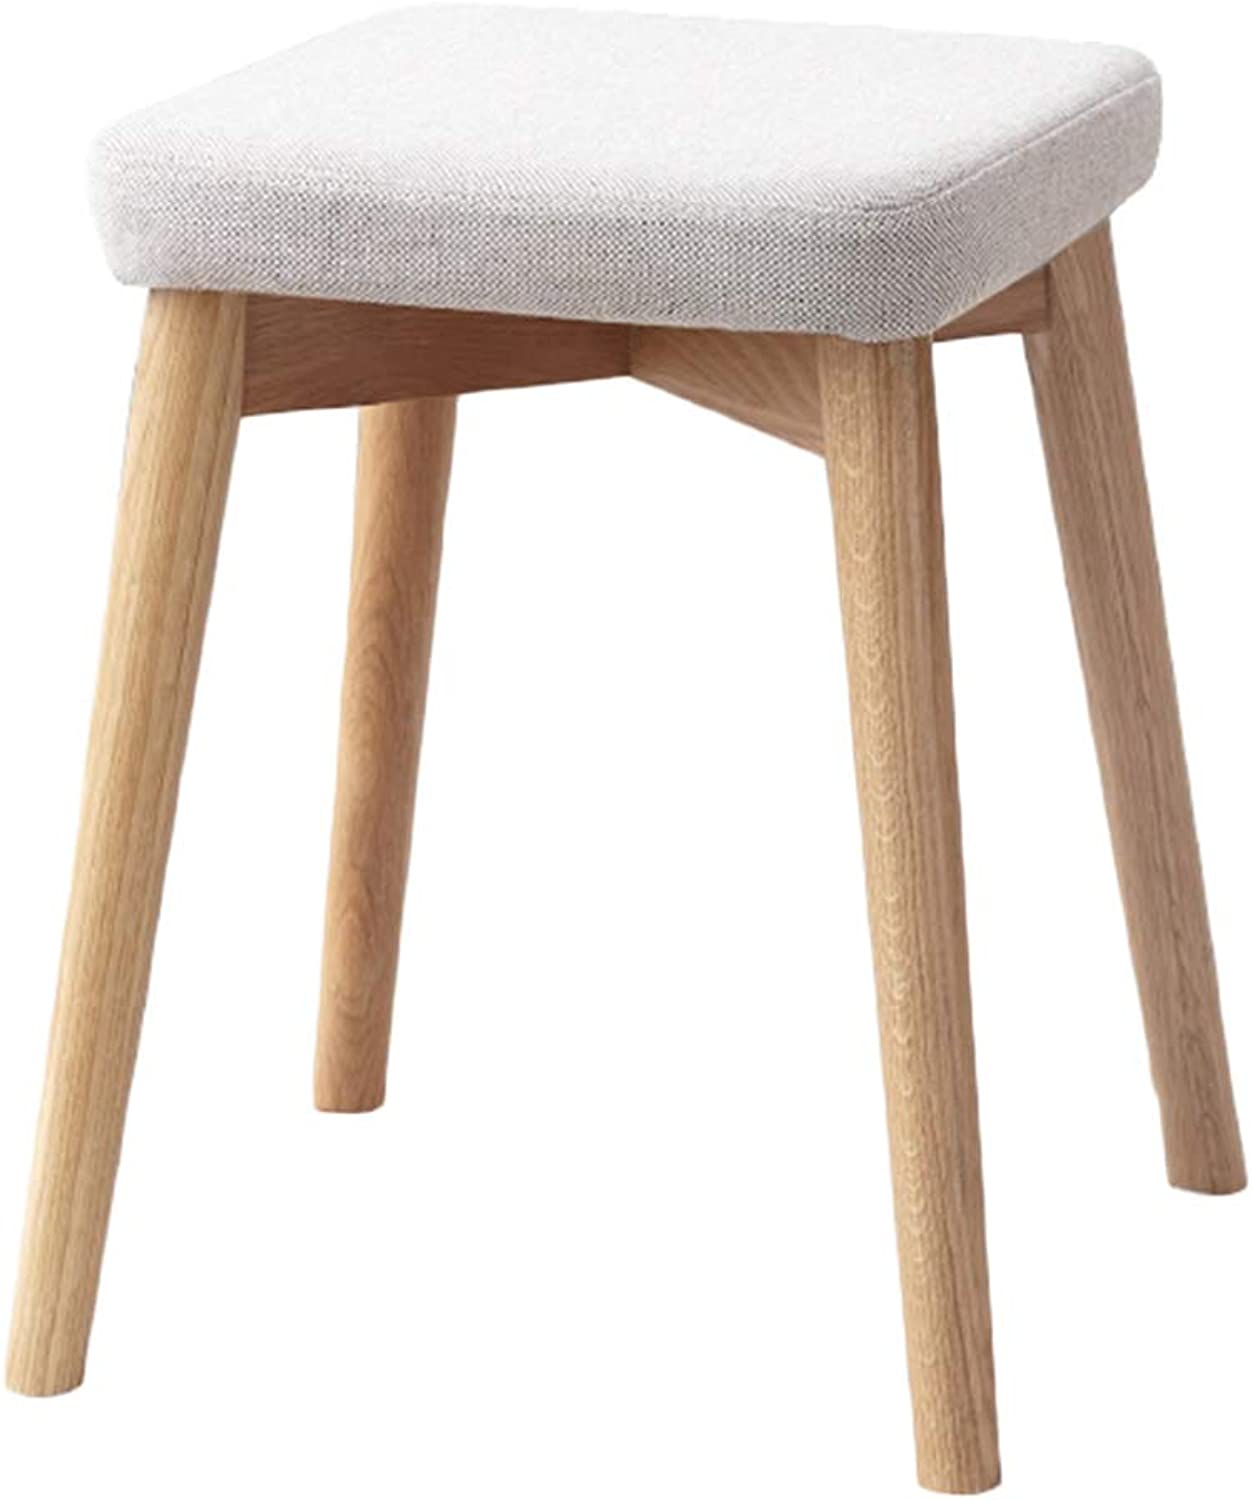 AGLZWY Dining Chair Multipurpose Solid Wood Removable and Washable Space Saving Fashion Non-Slip Makeup Stool Square Stool Living Room,2 Colours (color   A, Size   32X32X44cm)